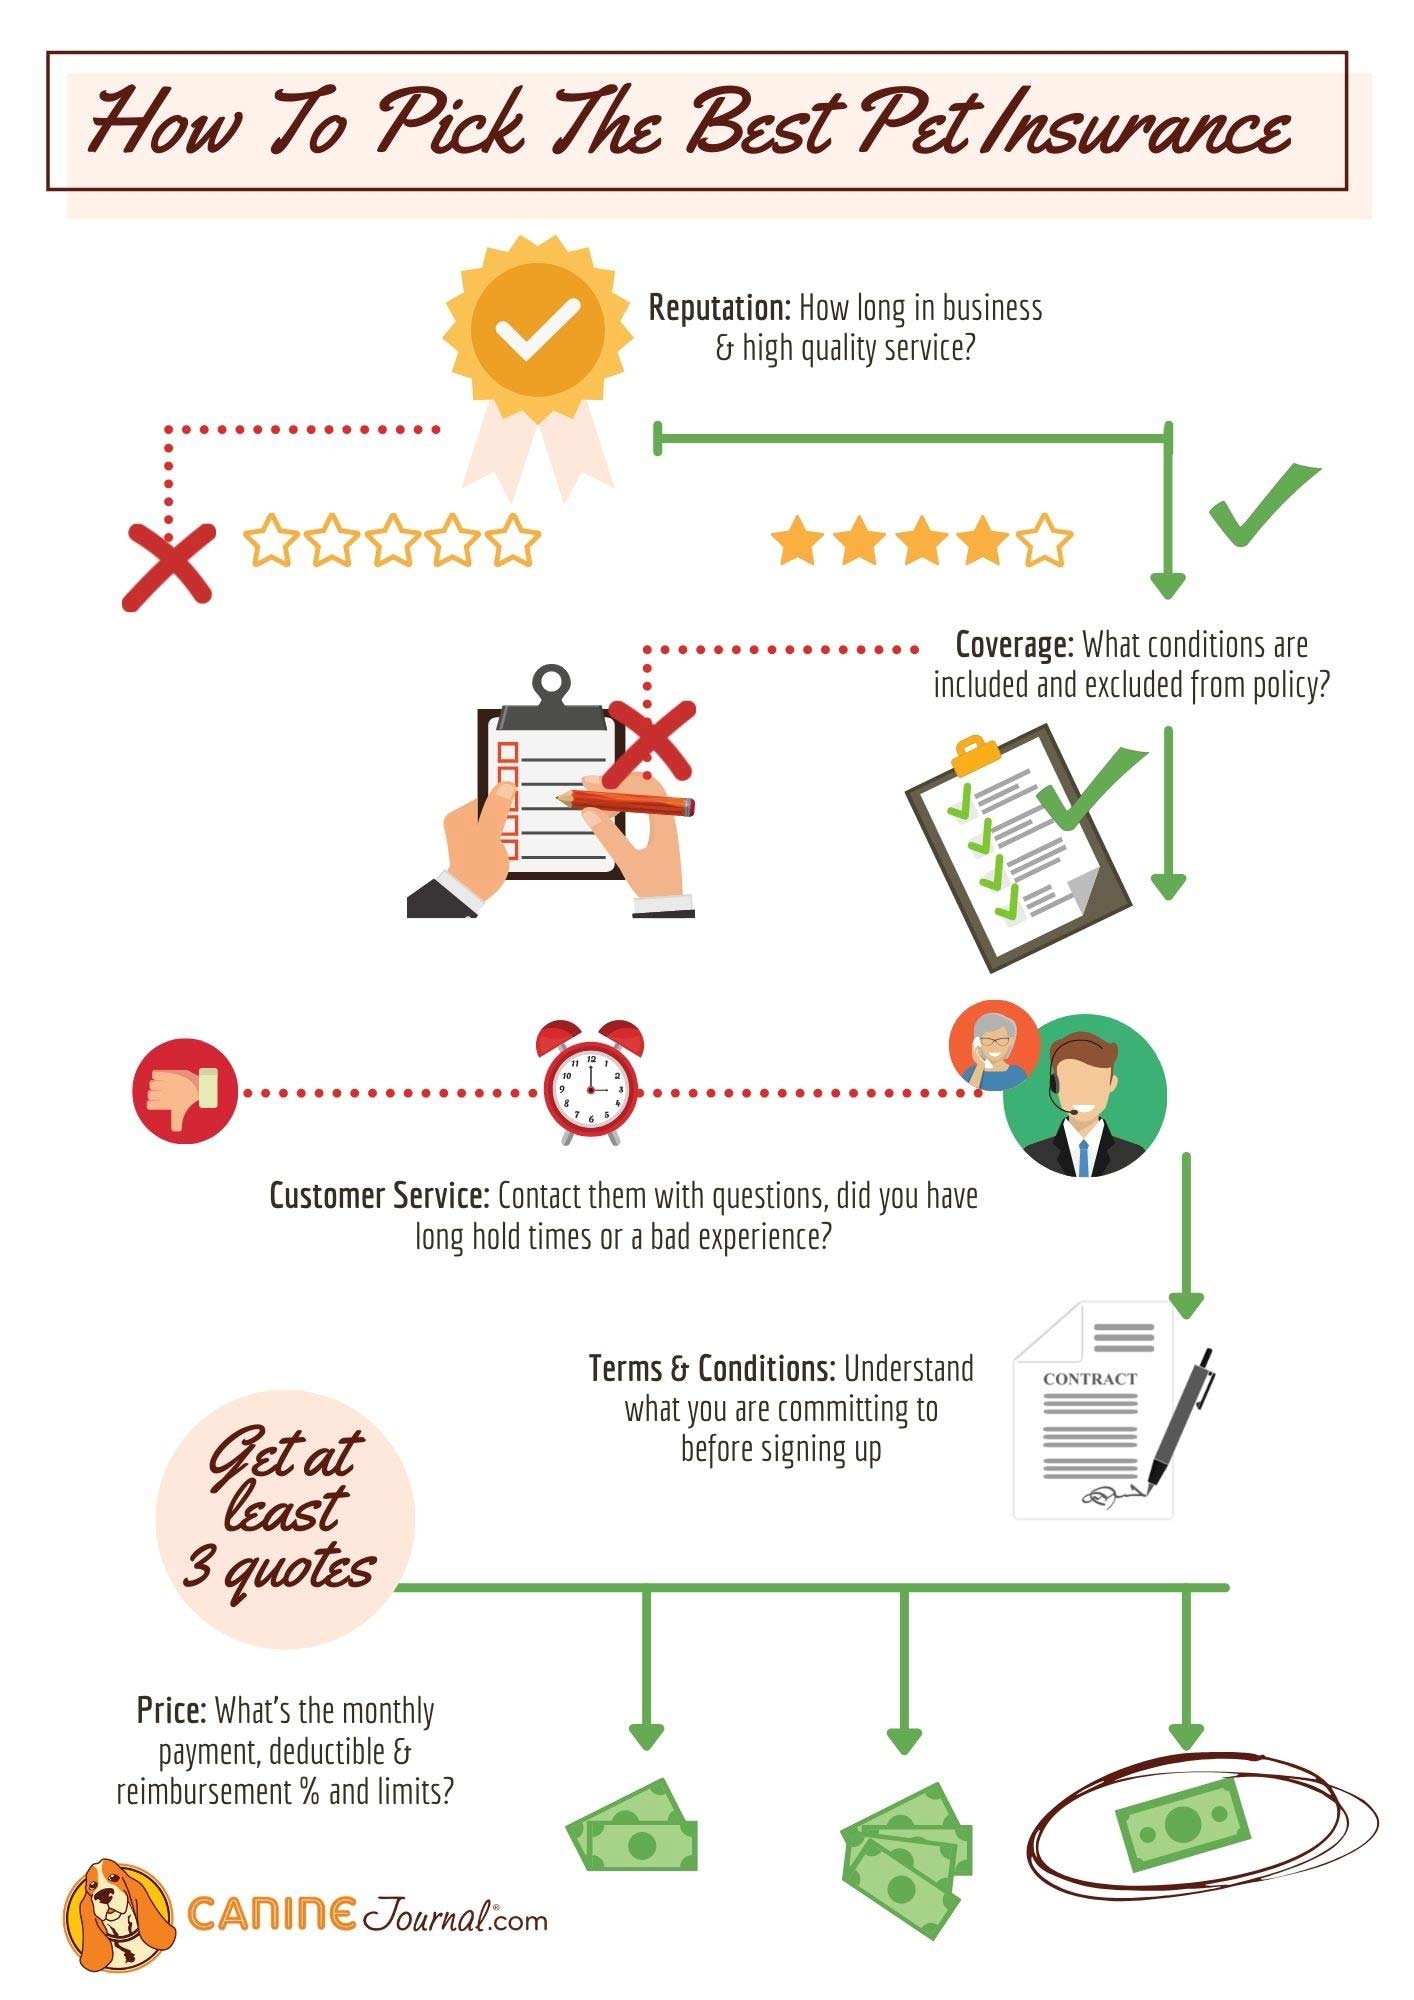 How To Pick The Best Pet Insurance Infographic